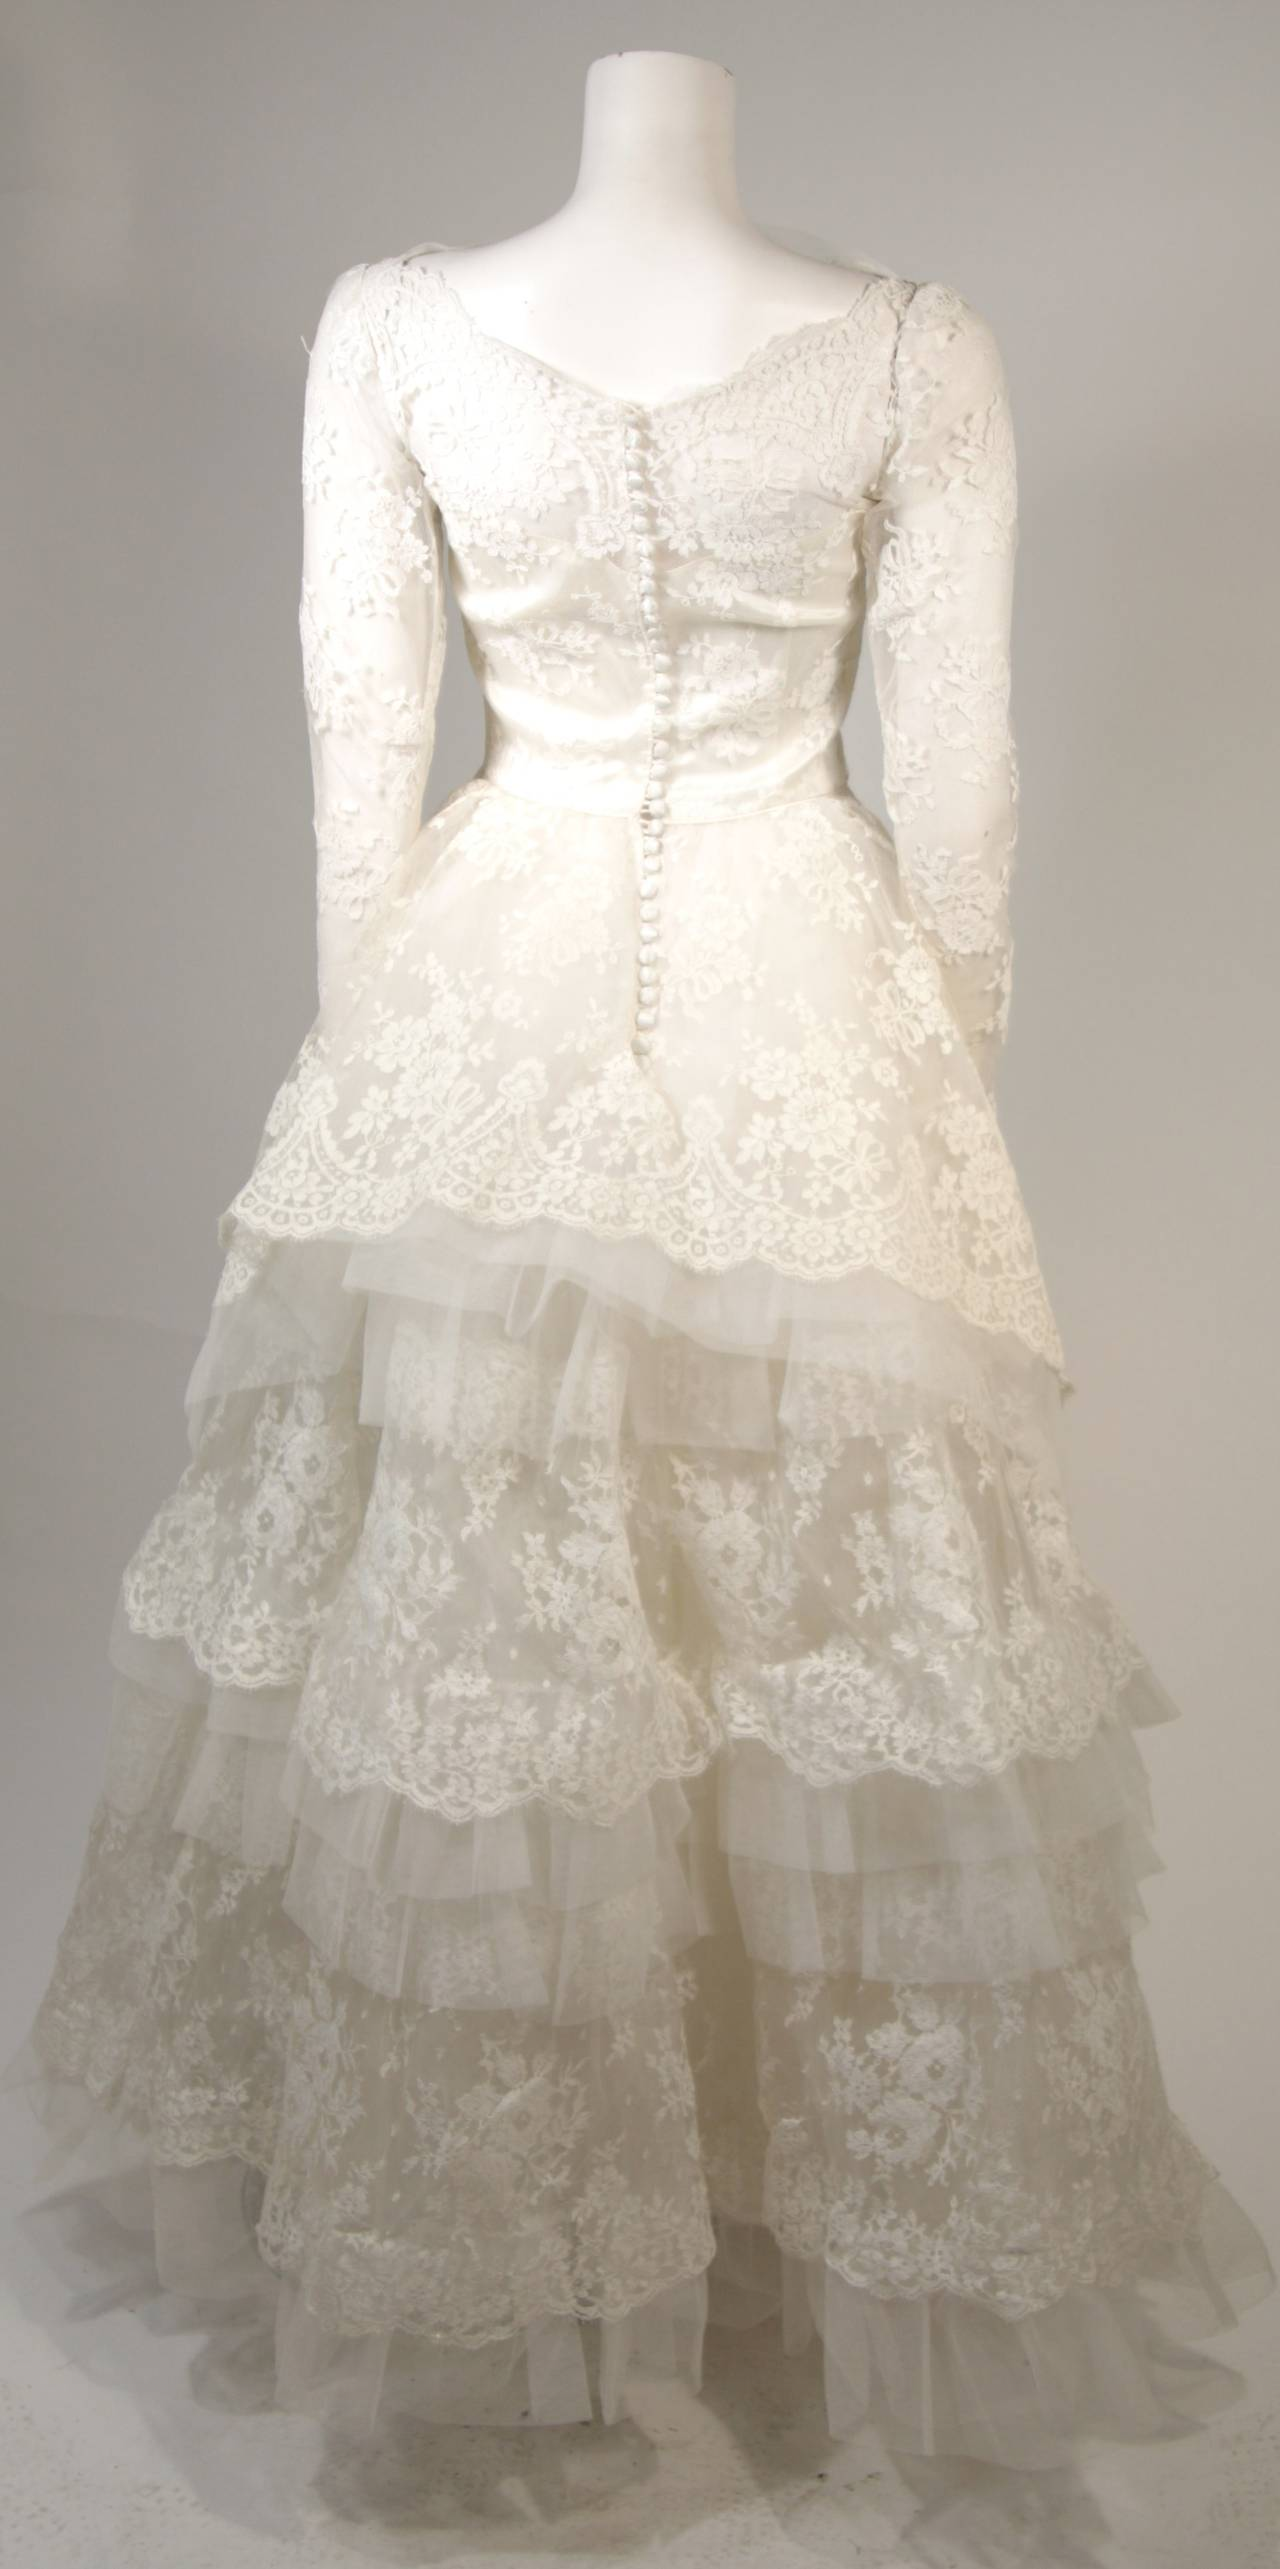 Vintage Lace Wedding Gown with Scalloped Edges and Long Sleeves Size Small For Sale 4